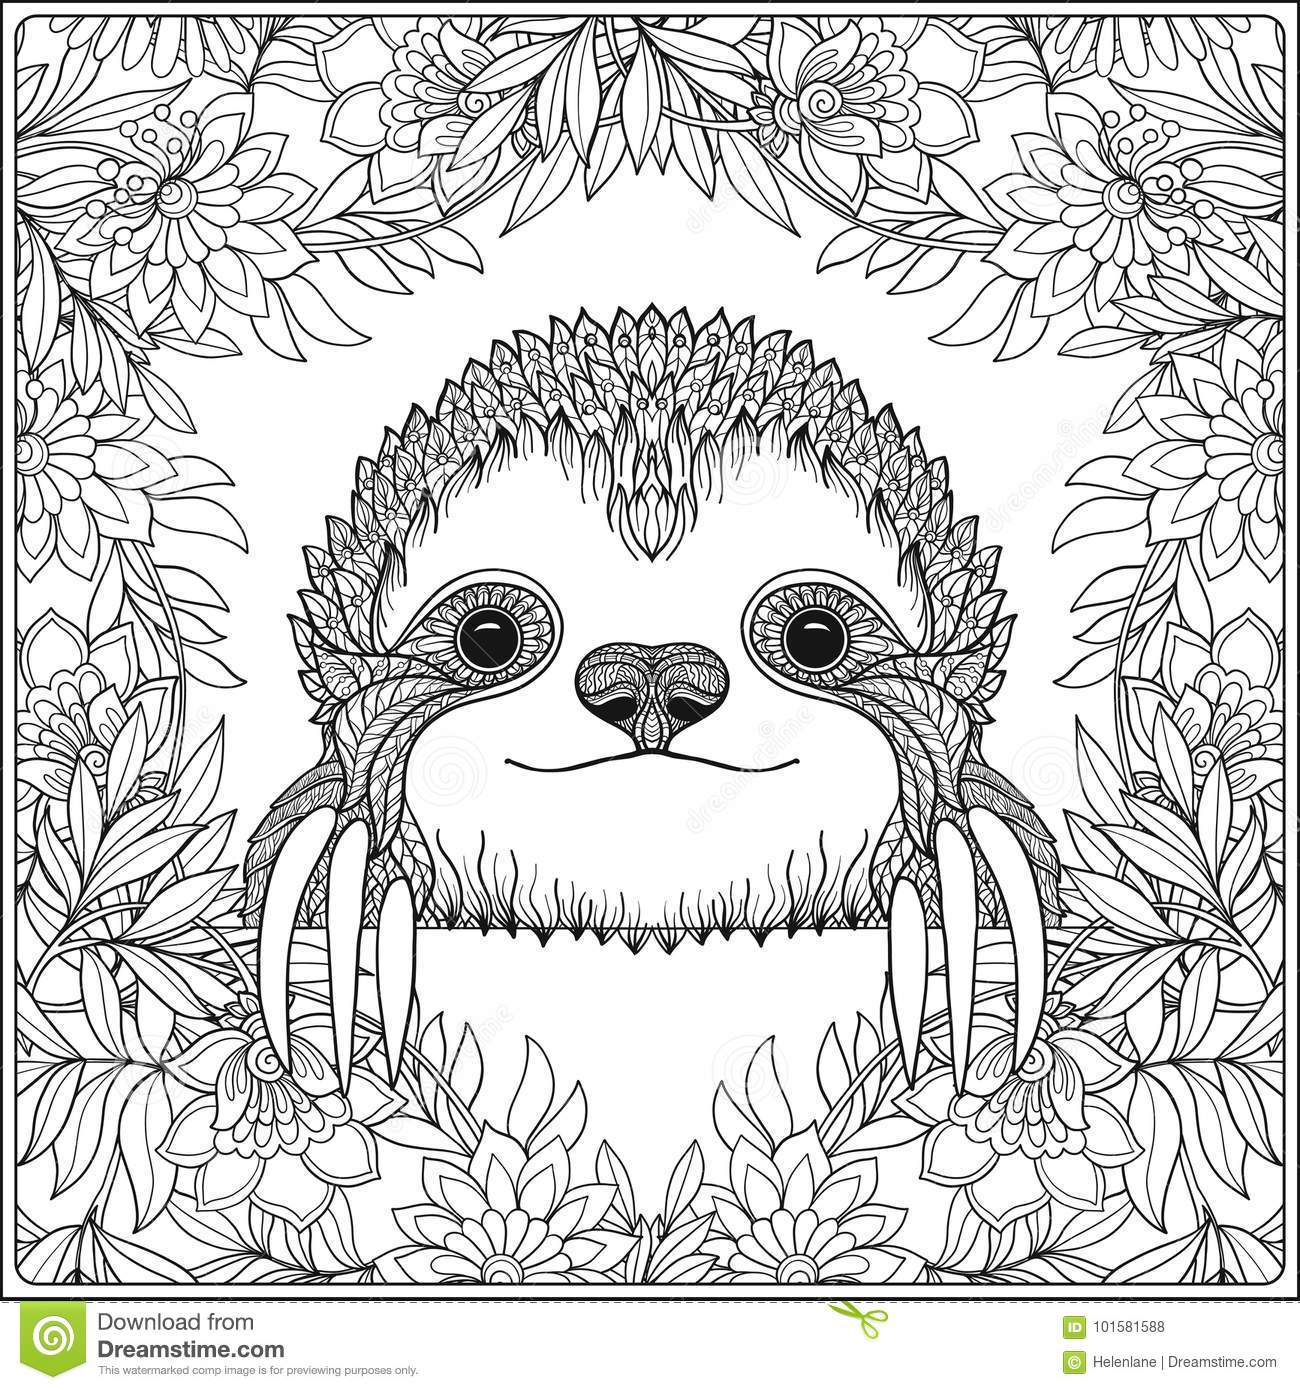 Coloring Page With Lovely Sloth In Forest. Stock Illustration ...